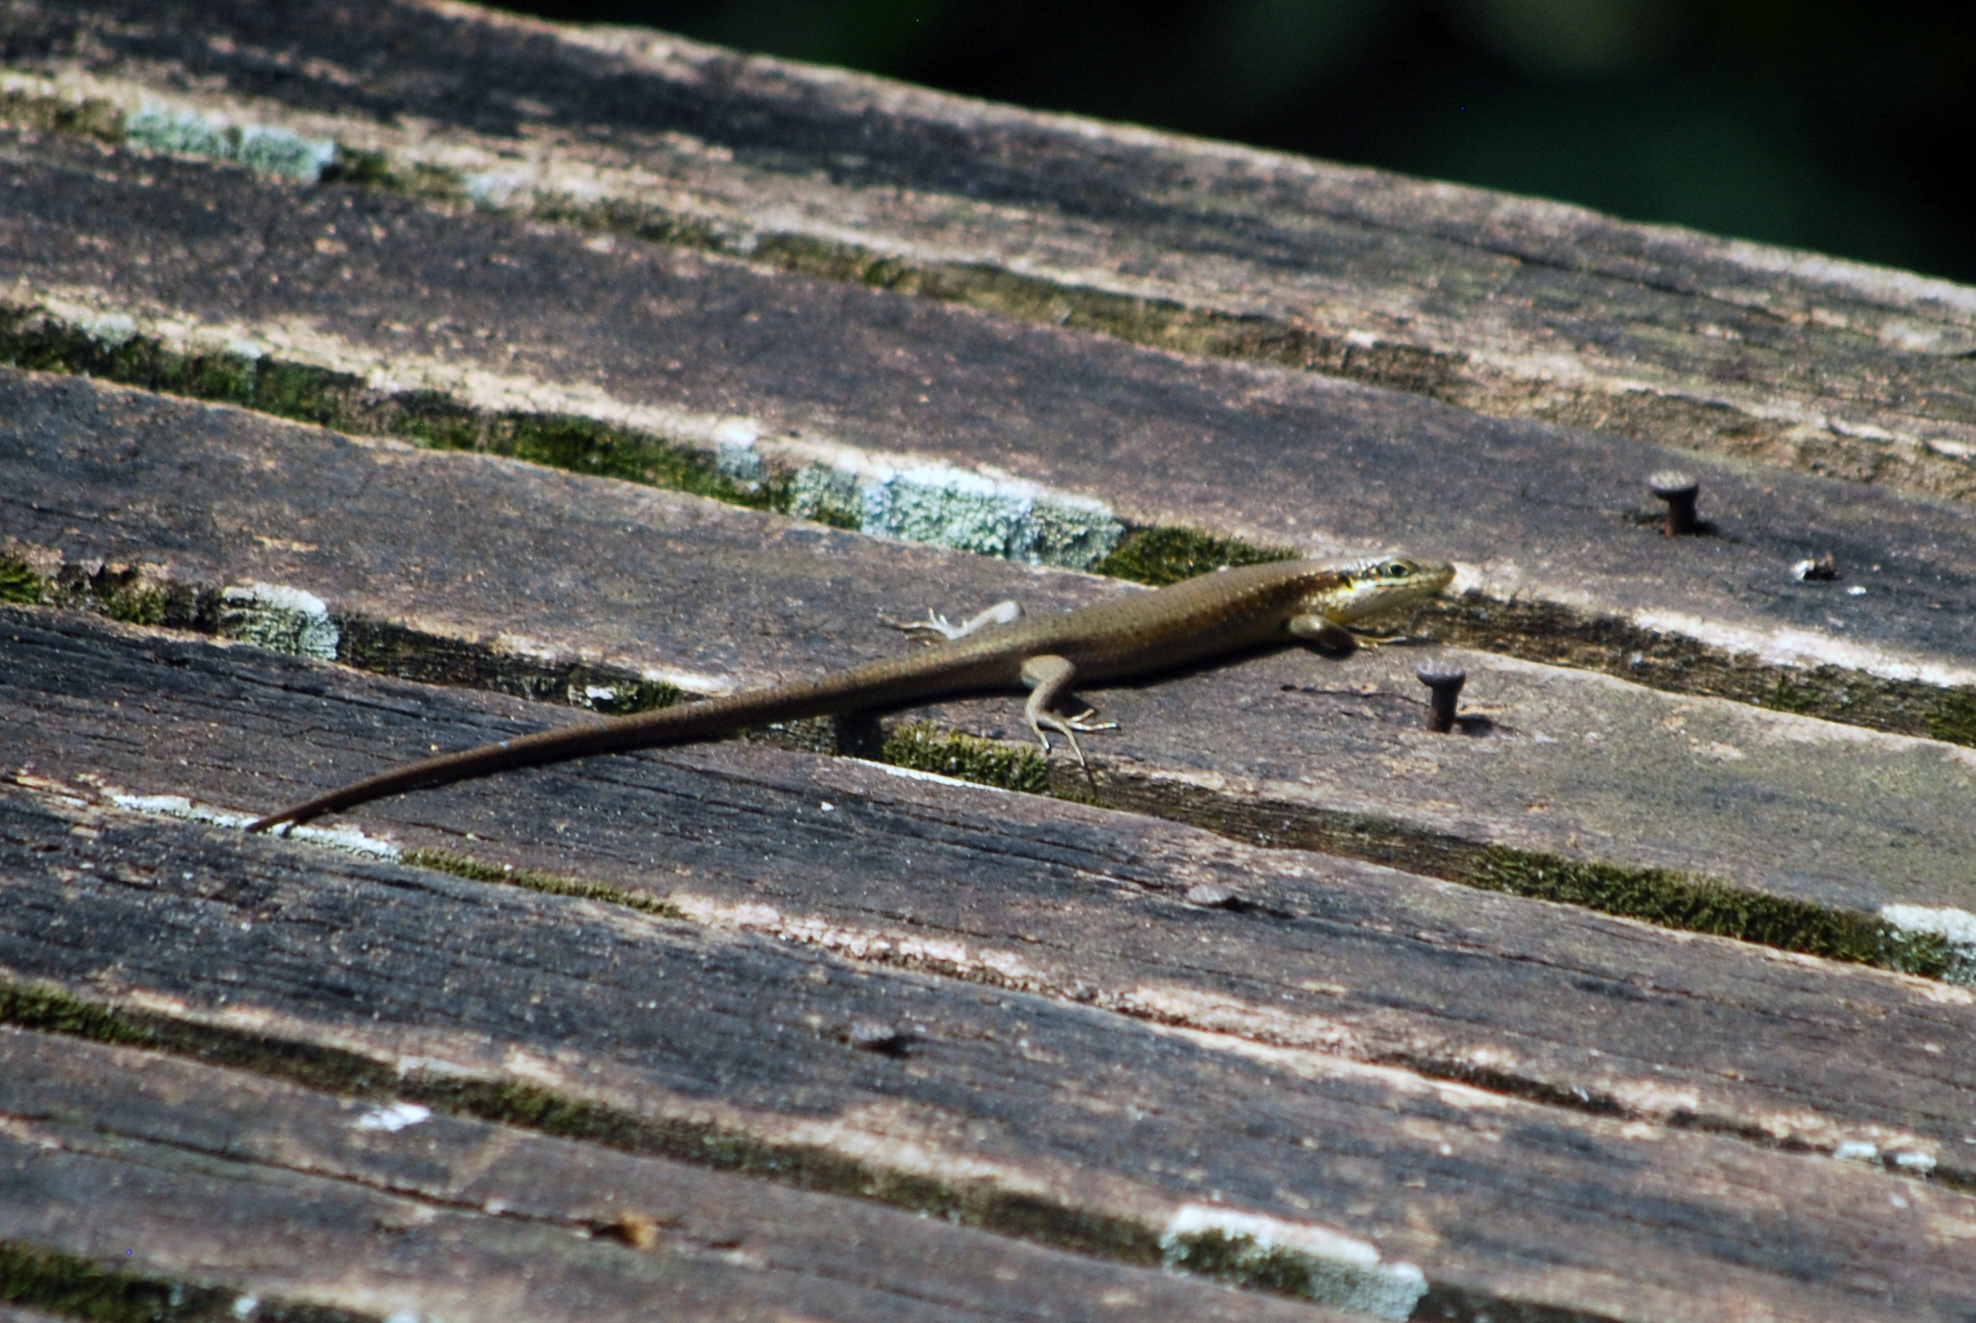 A speckle-lipped skink basking on the deck at Sangha Lodge.